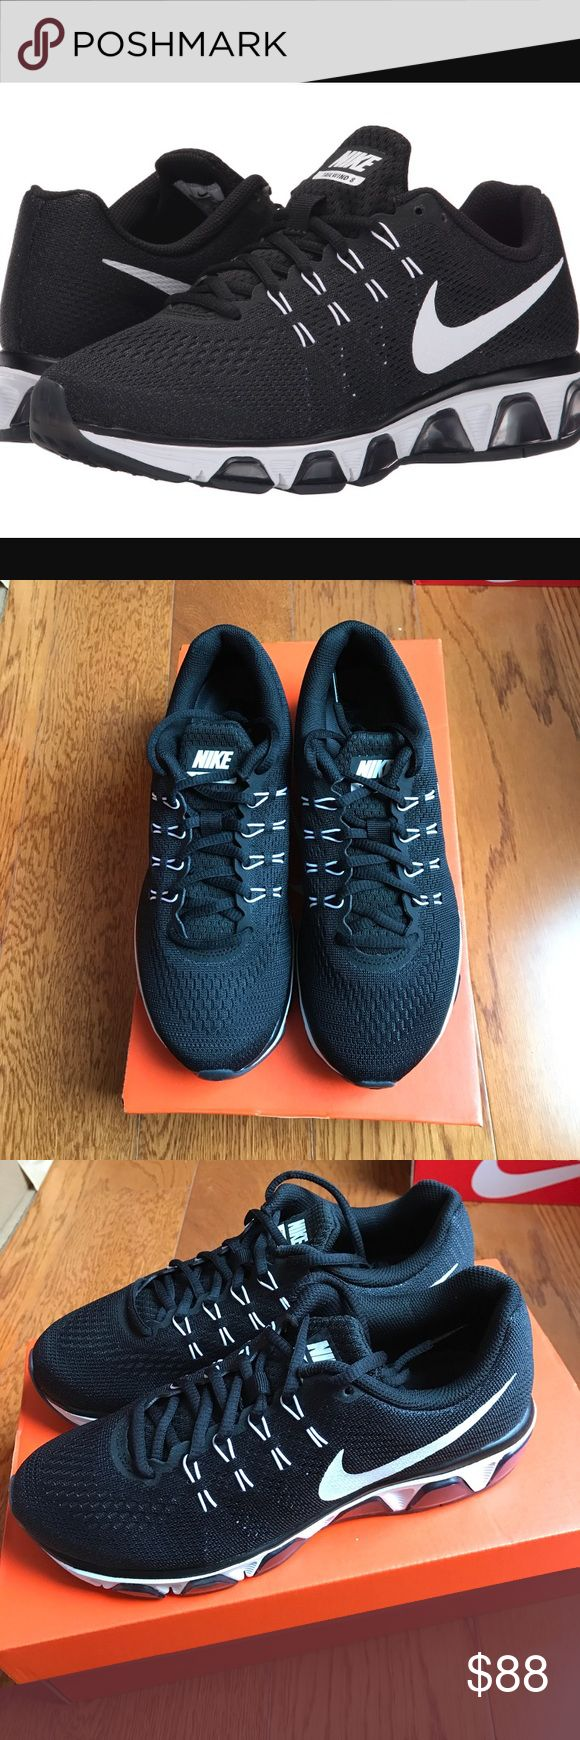 NIKE AIR MAX TAILWIND 8 Brand new with original box. Price is firm unless bundle. Nike Shoes Sneakers